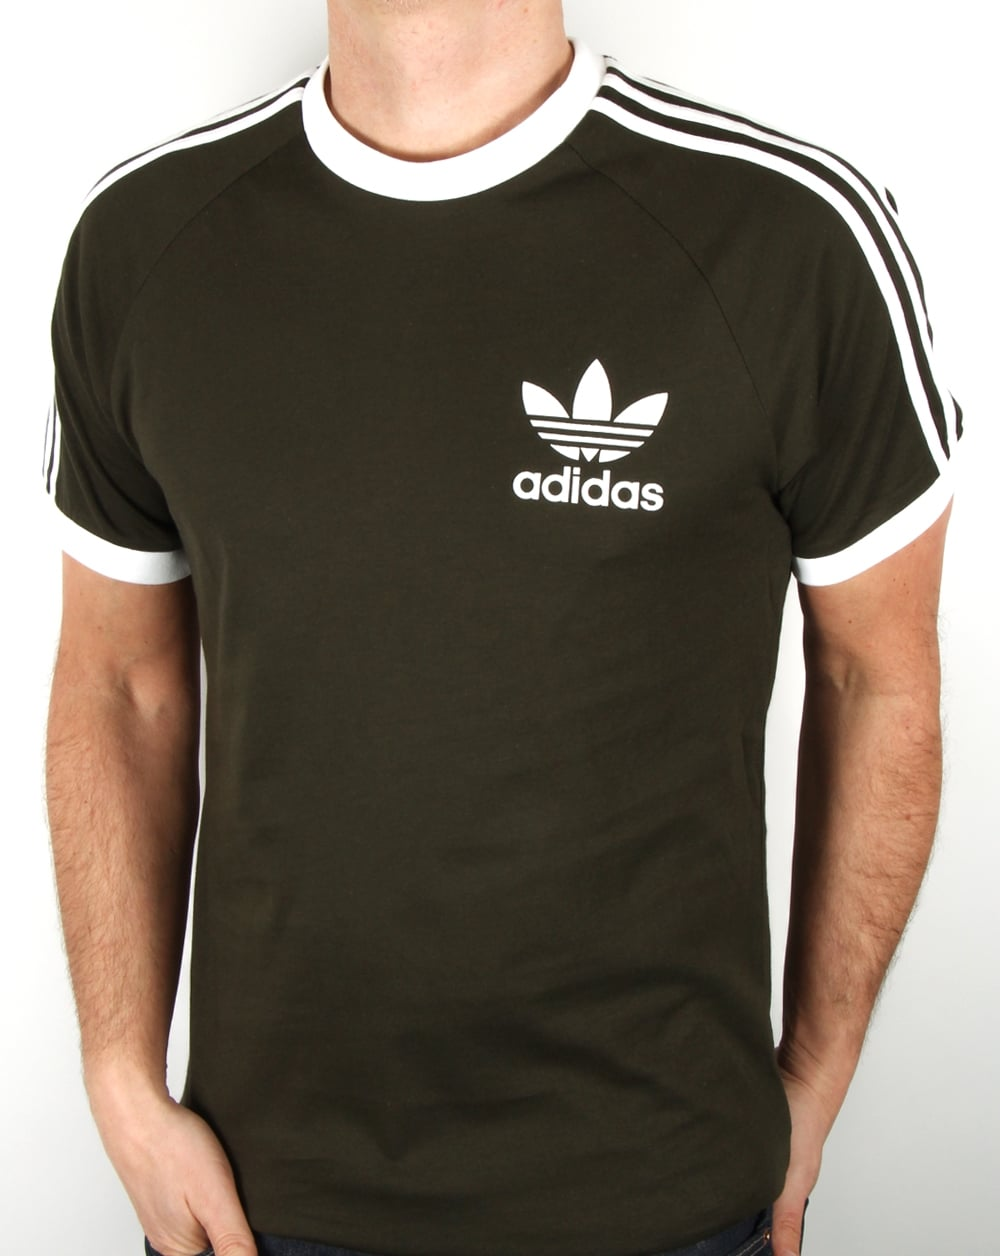 Adidas originals clfn t shirt night cargo men 39 s tee for Adidas lotus t shirt